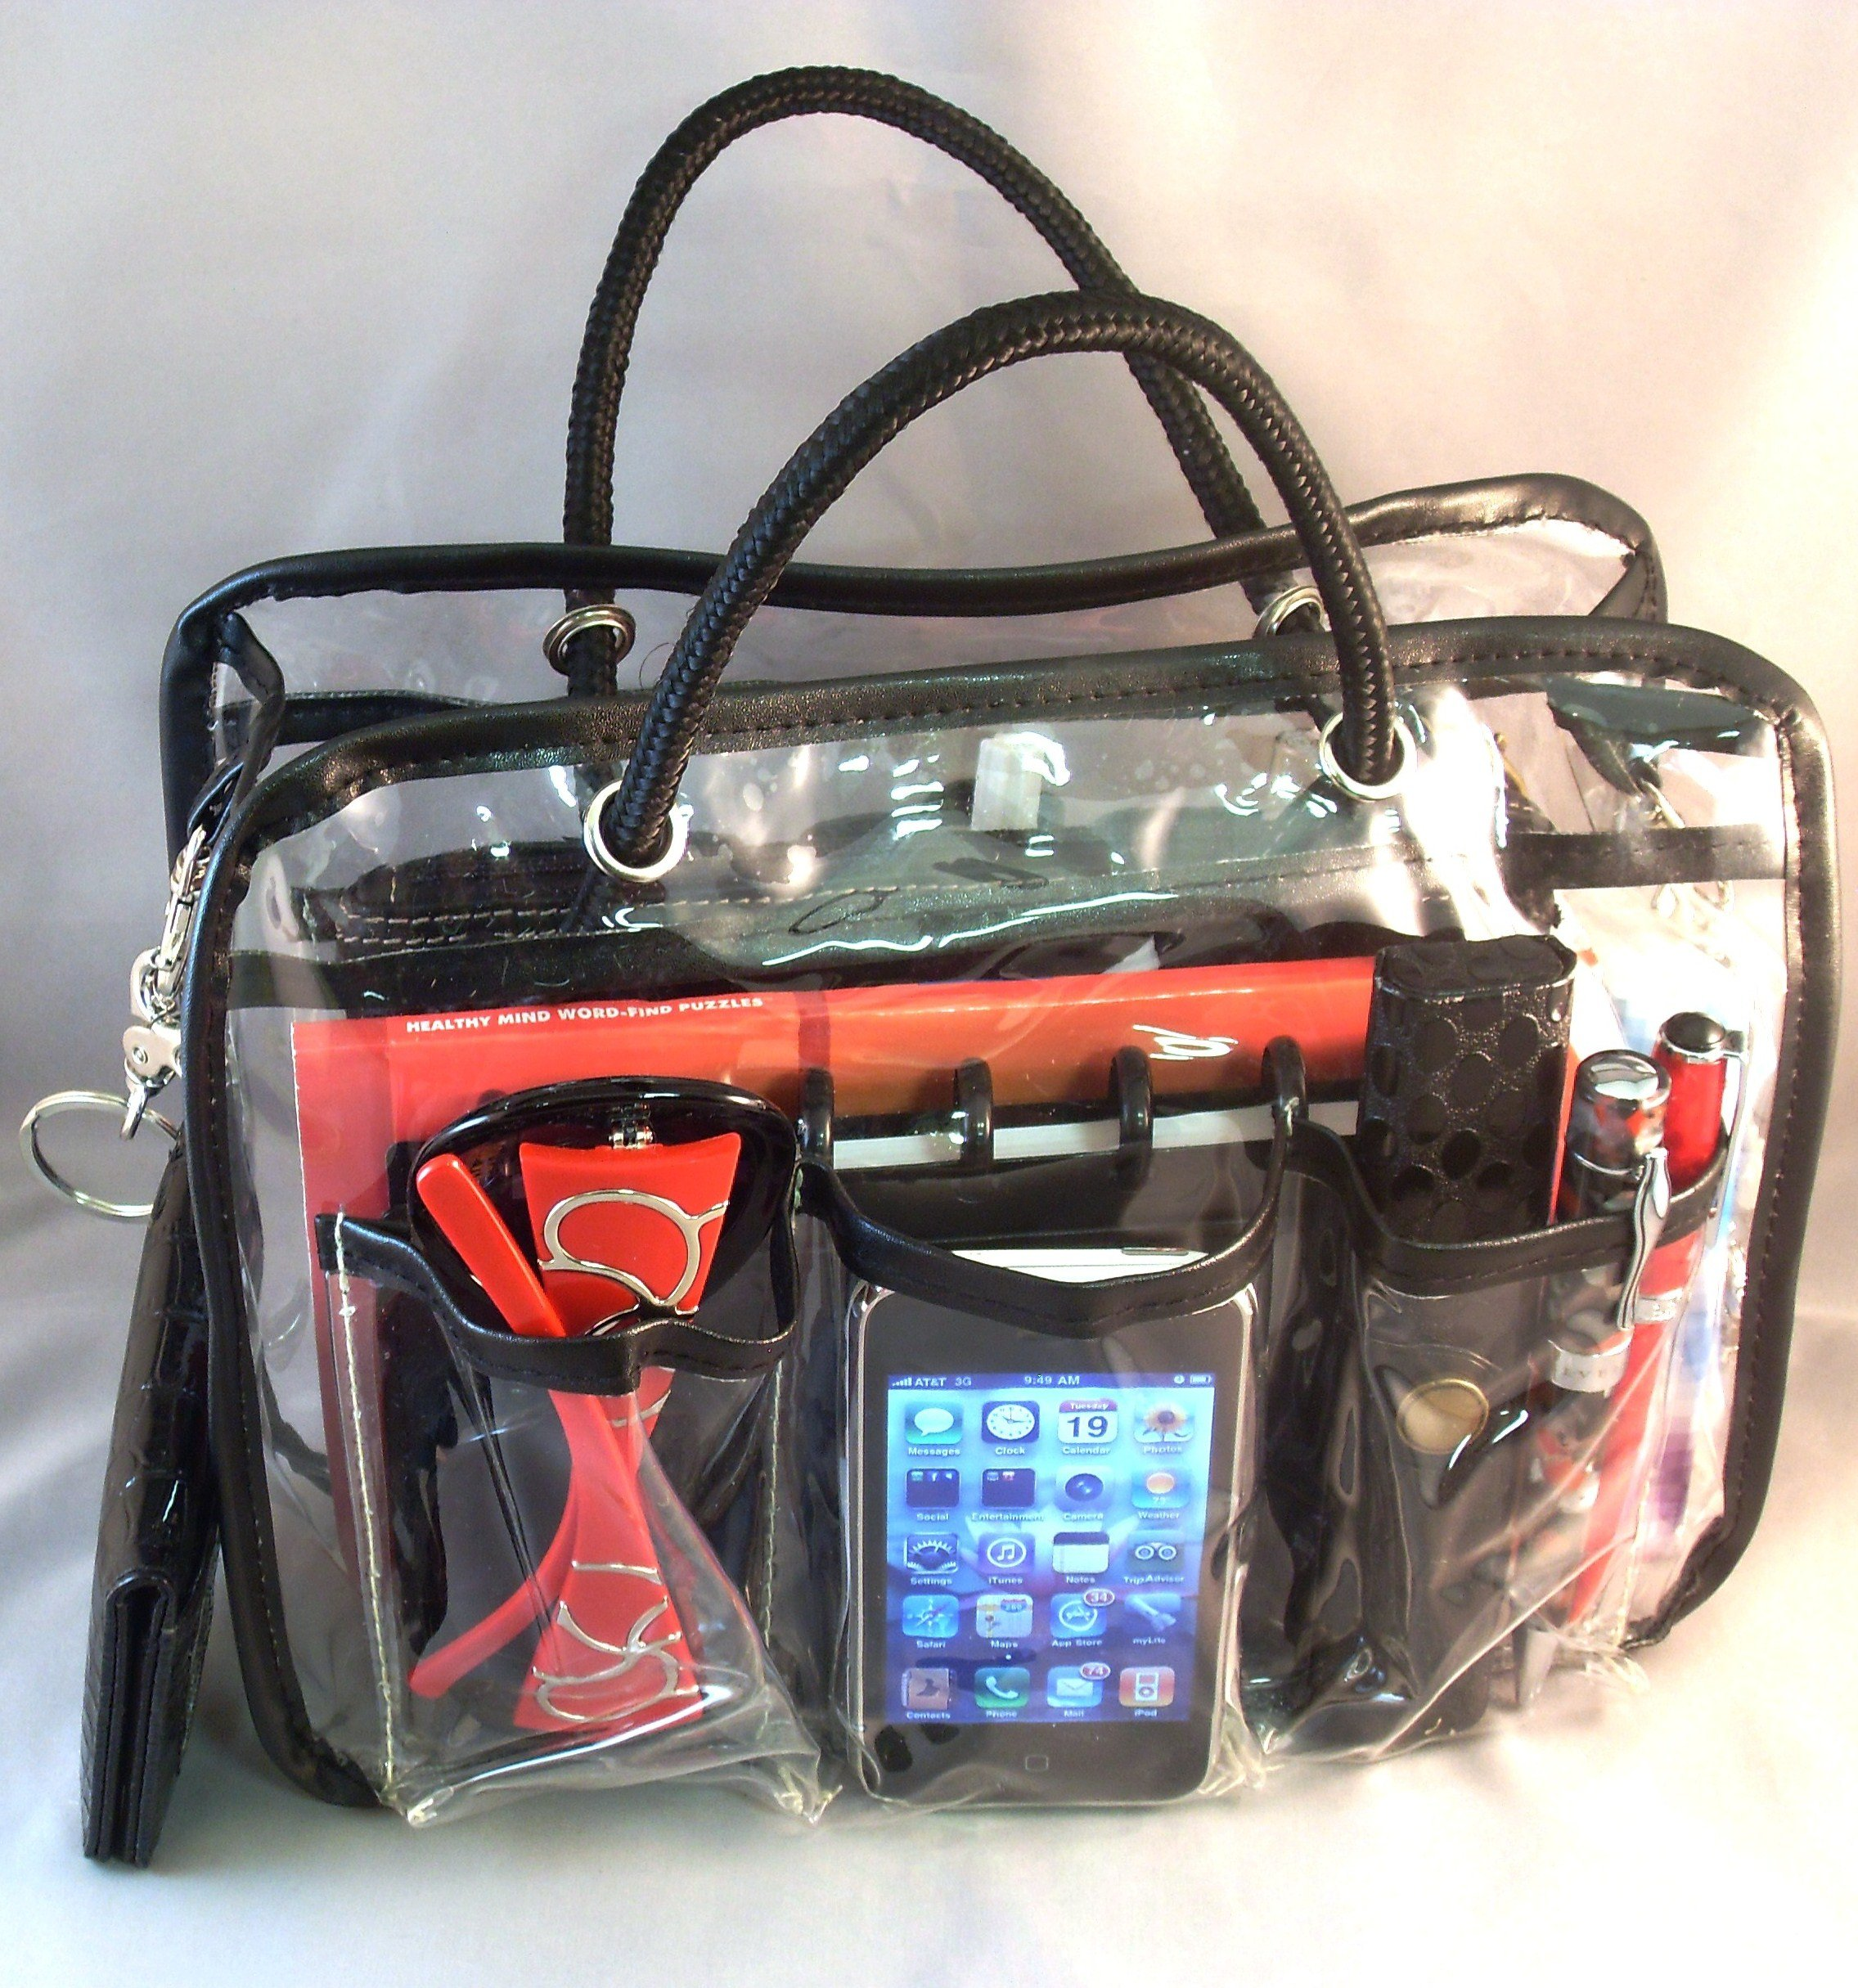 3 6 day delivery lexie clear pvc handbag bag purse travel cosmetic make up tote. Black Bedroom Furniture Sets. Home Design Ideas